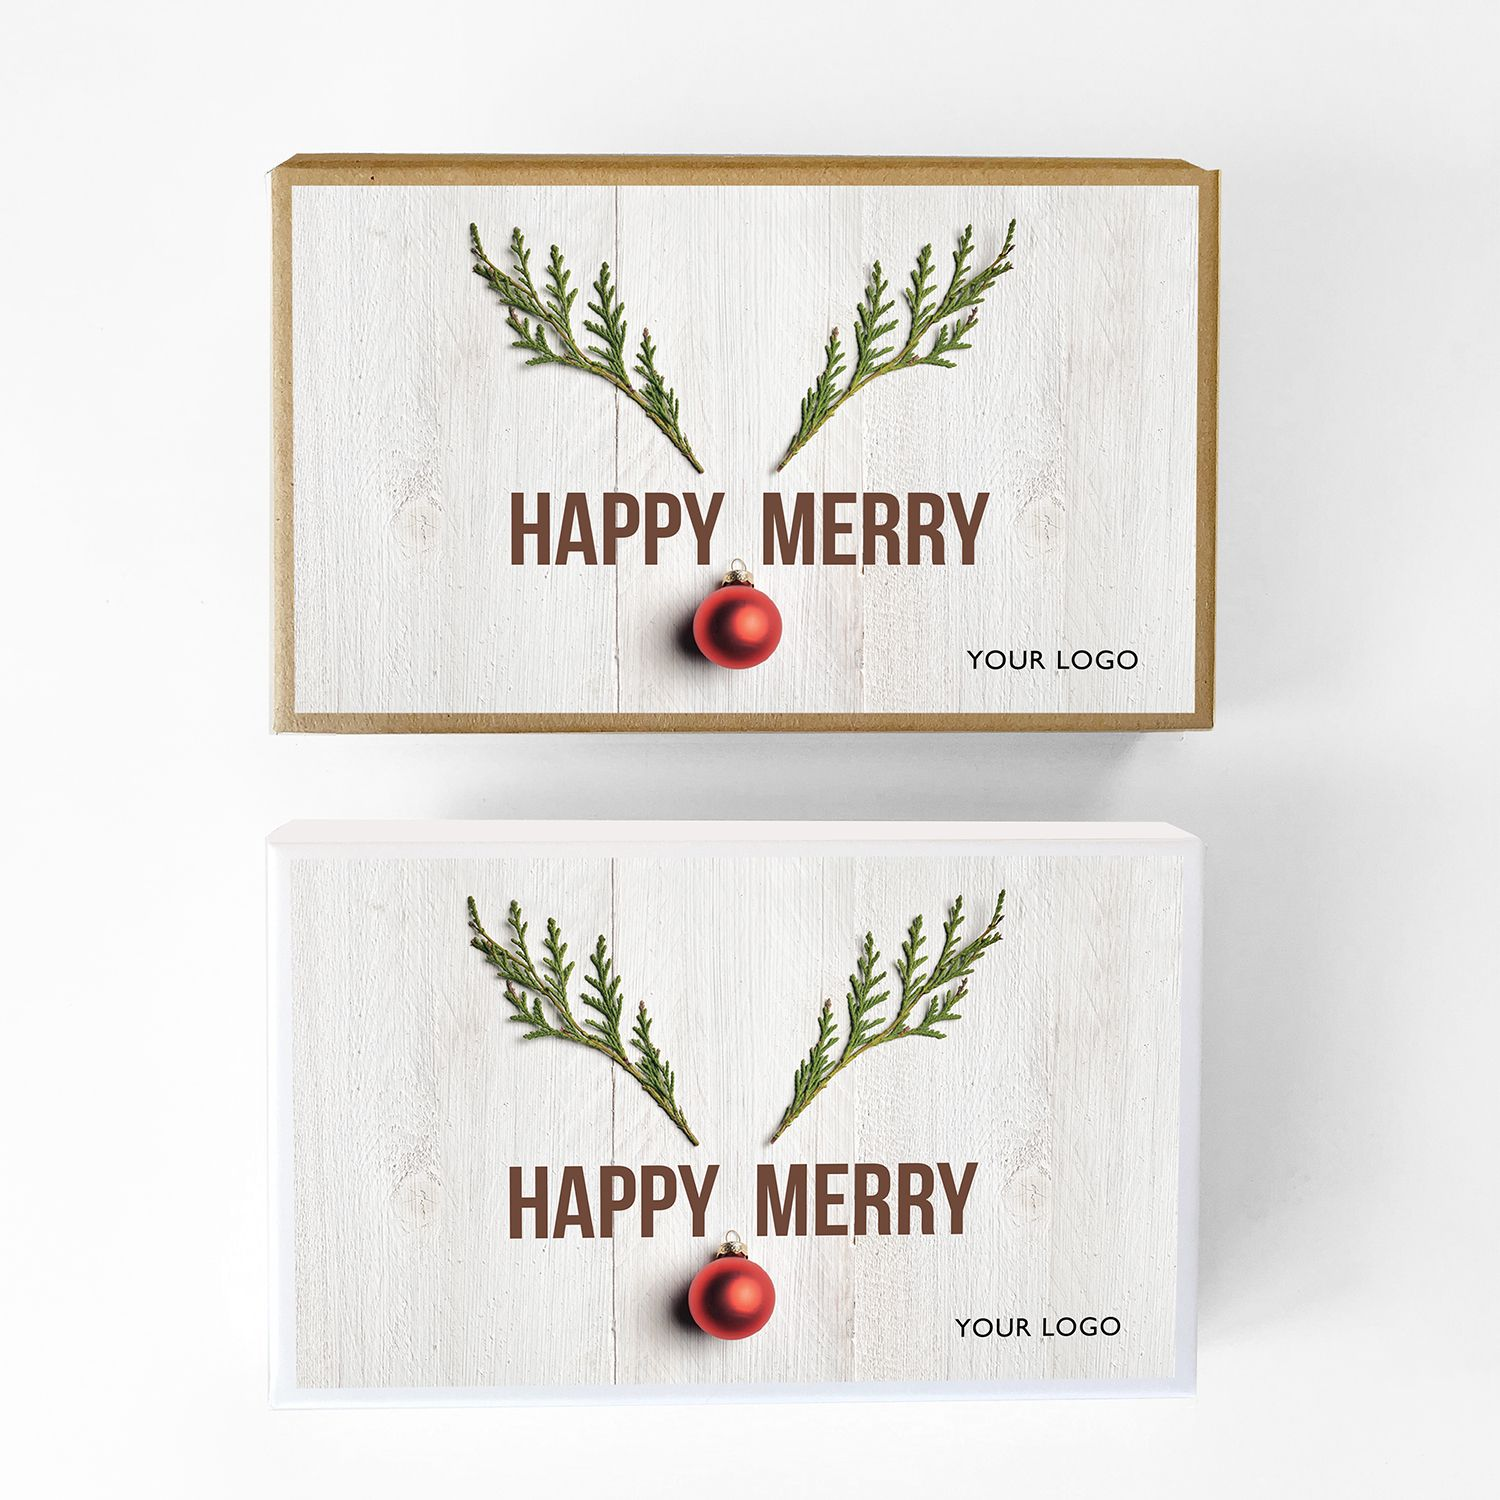 Custom Holiday Corporate Gifts Filled With Creamy All Natural Good